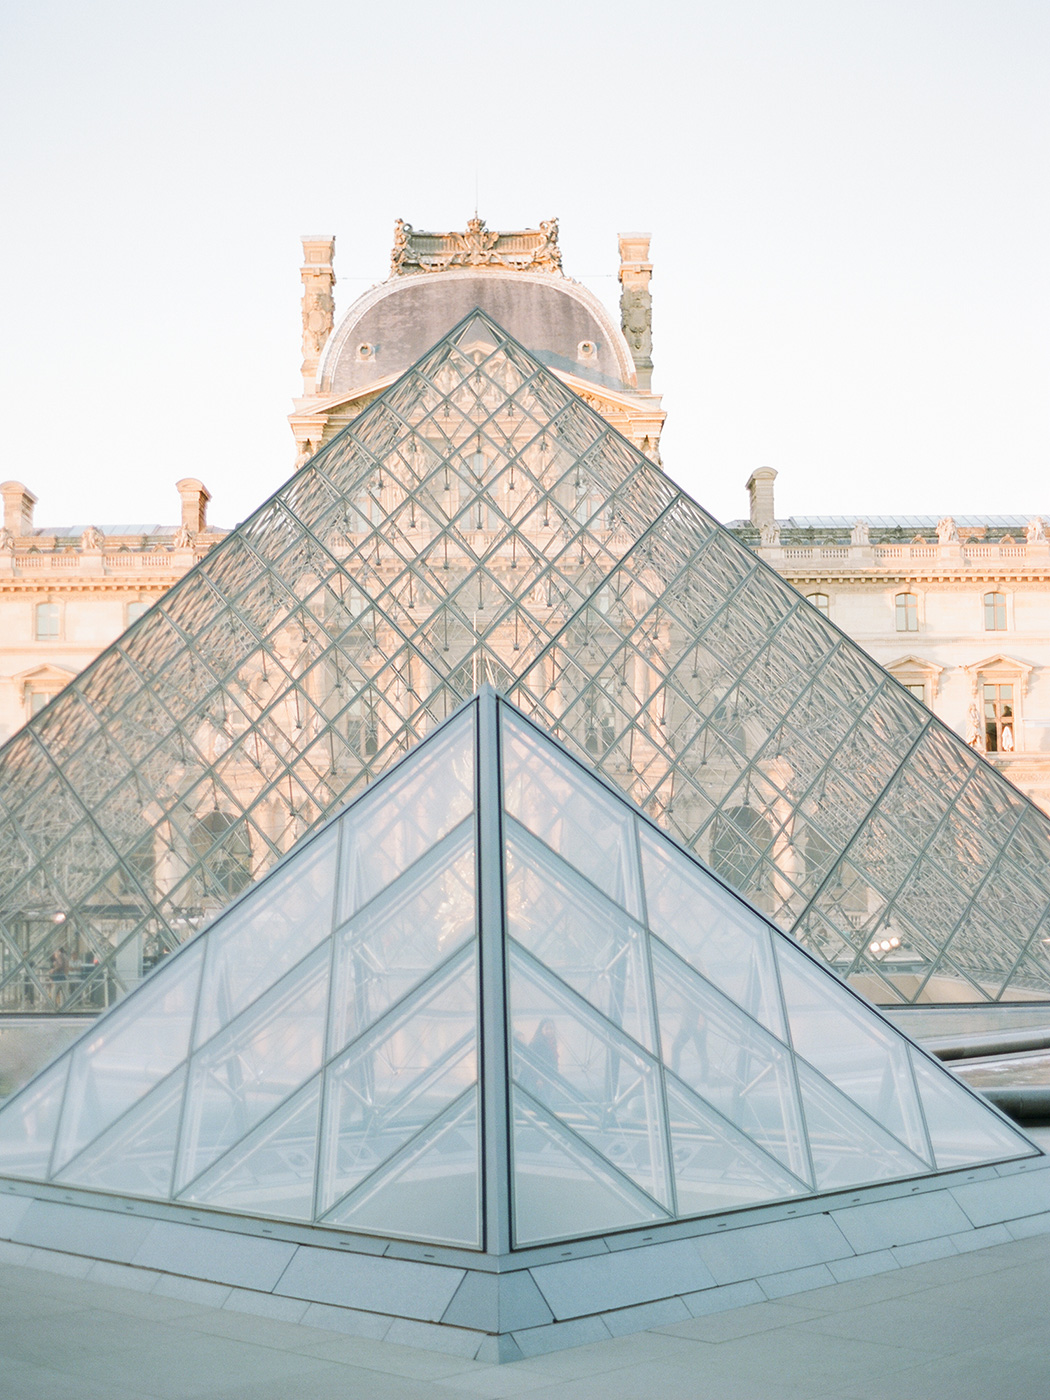 The Louvre Paris | Rensche Mari